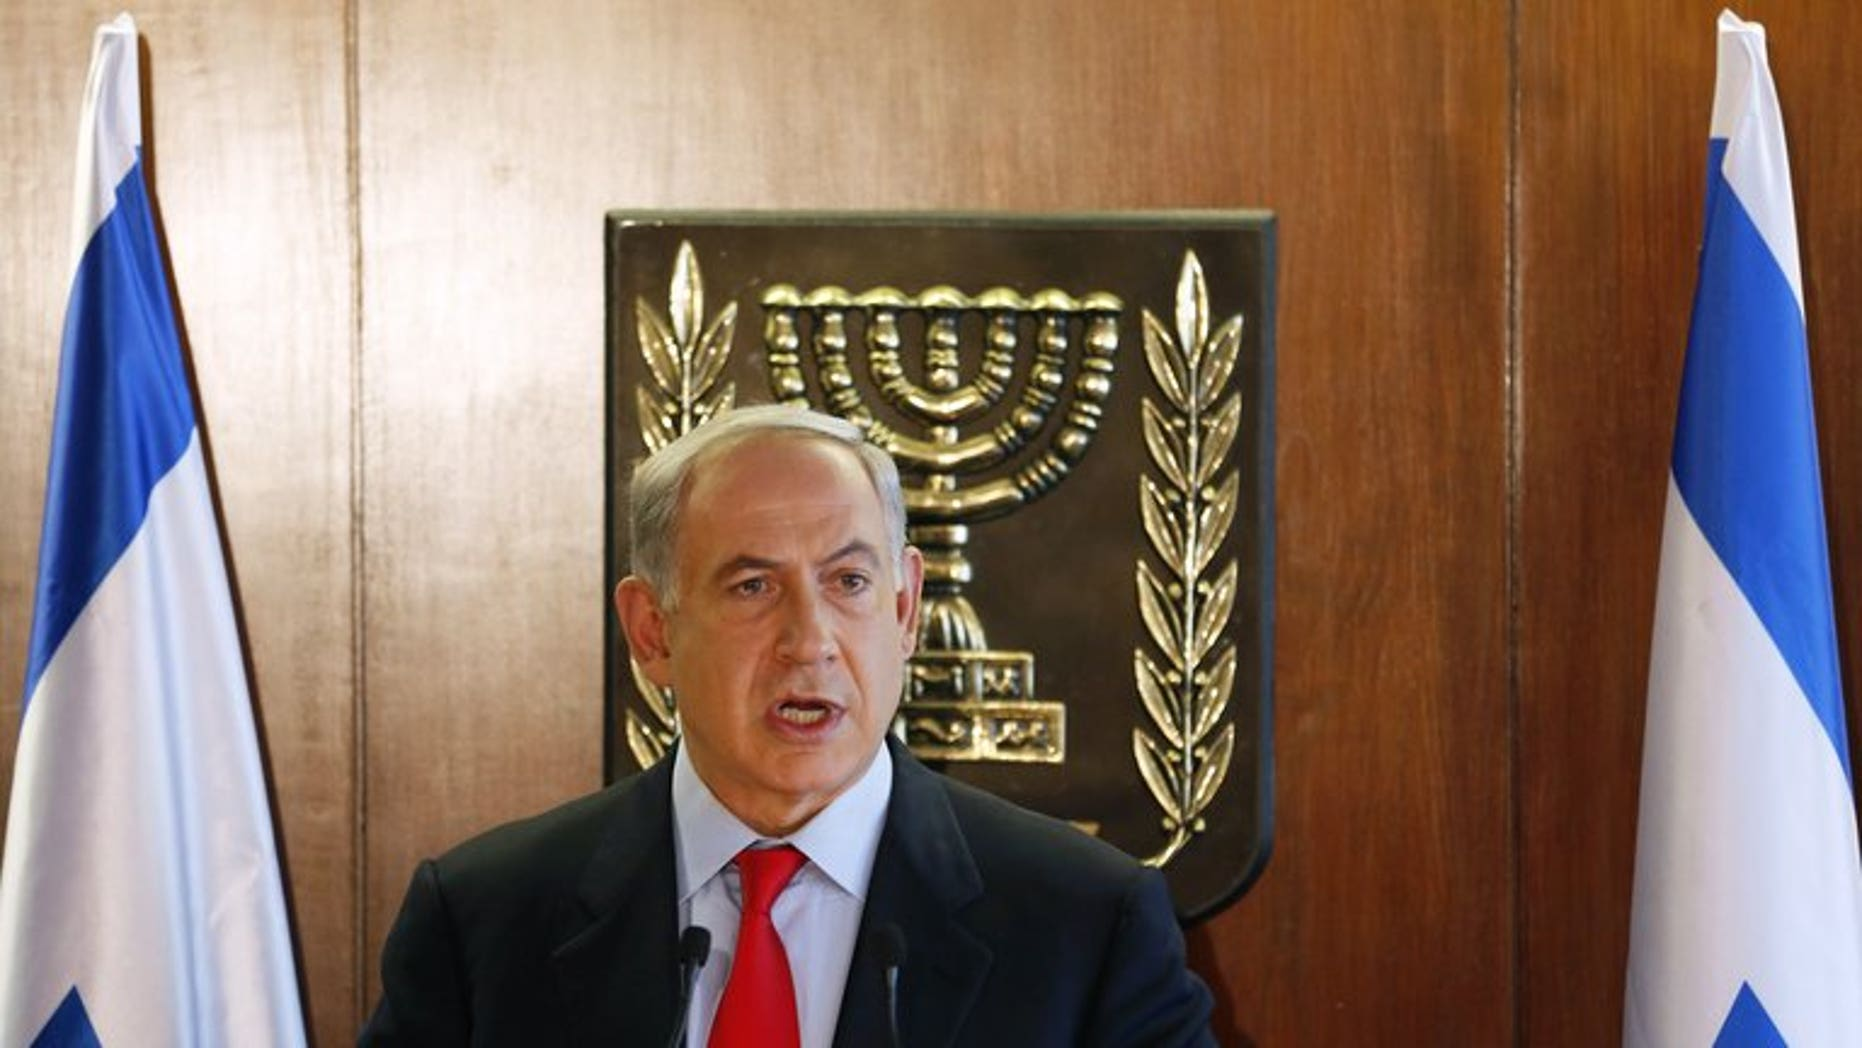 Israel's Prime Minister Benjamin Netanyahu delivers a statement to the media, in Jerusalem, on July 22, 2013. He will seek cabinet approval on Sunday for a contentious release of 104 veteran Palestinian and Israeli-Arab prisoners, to coincide with the resumption of peace talks.